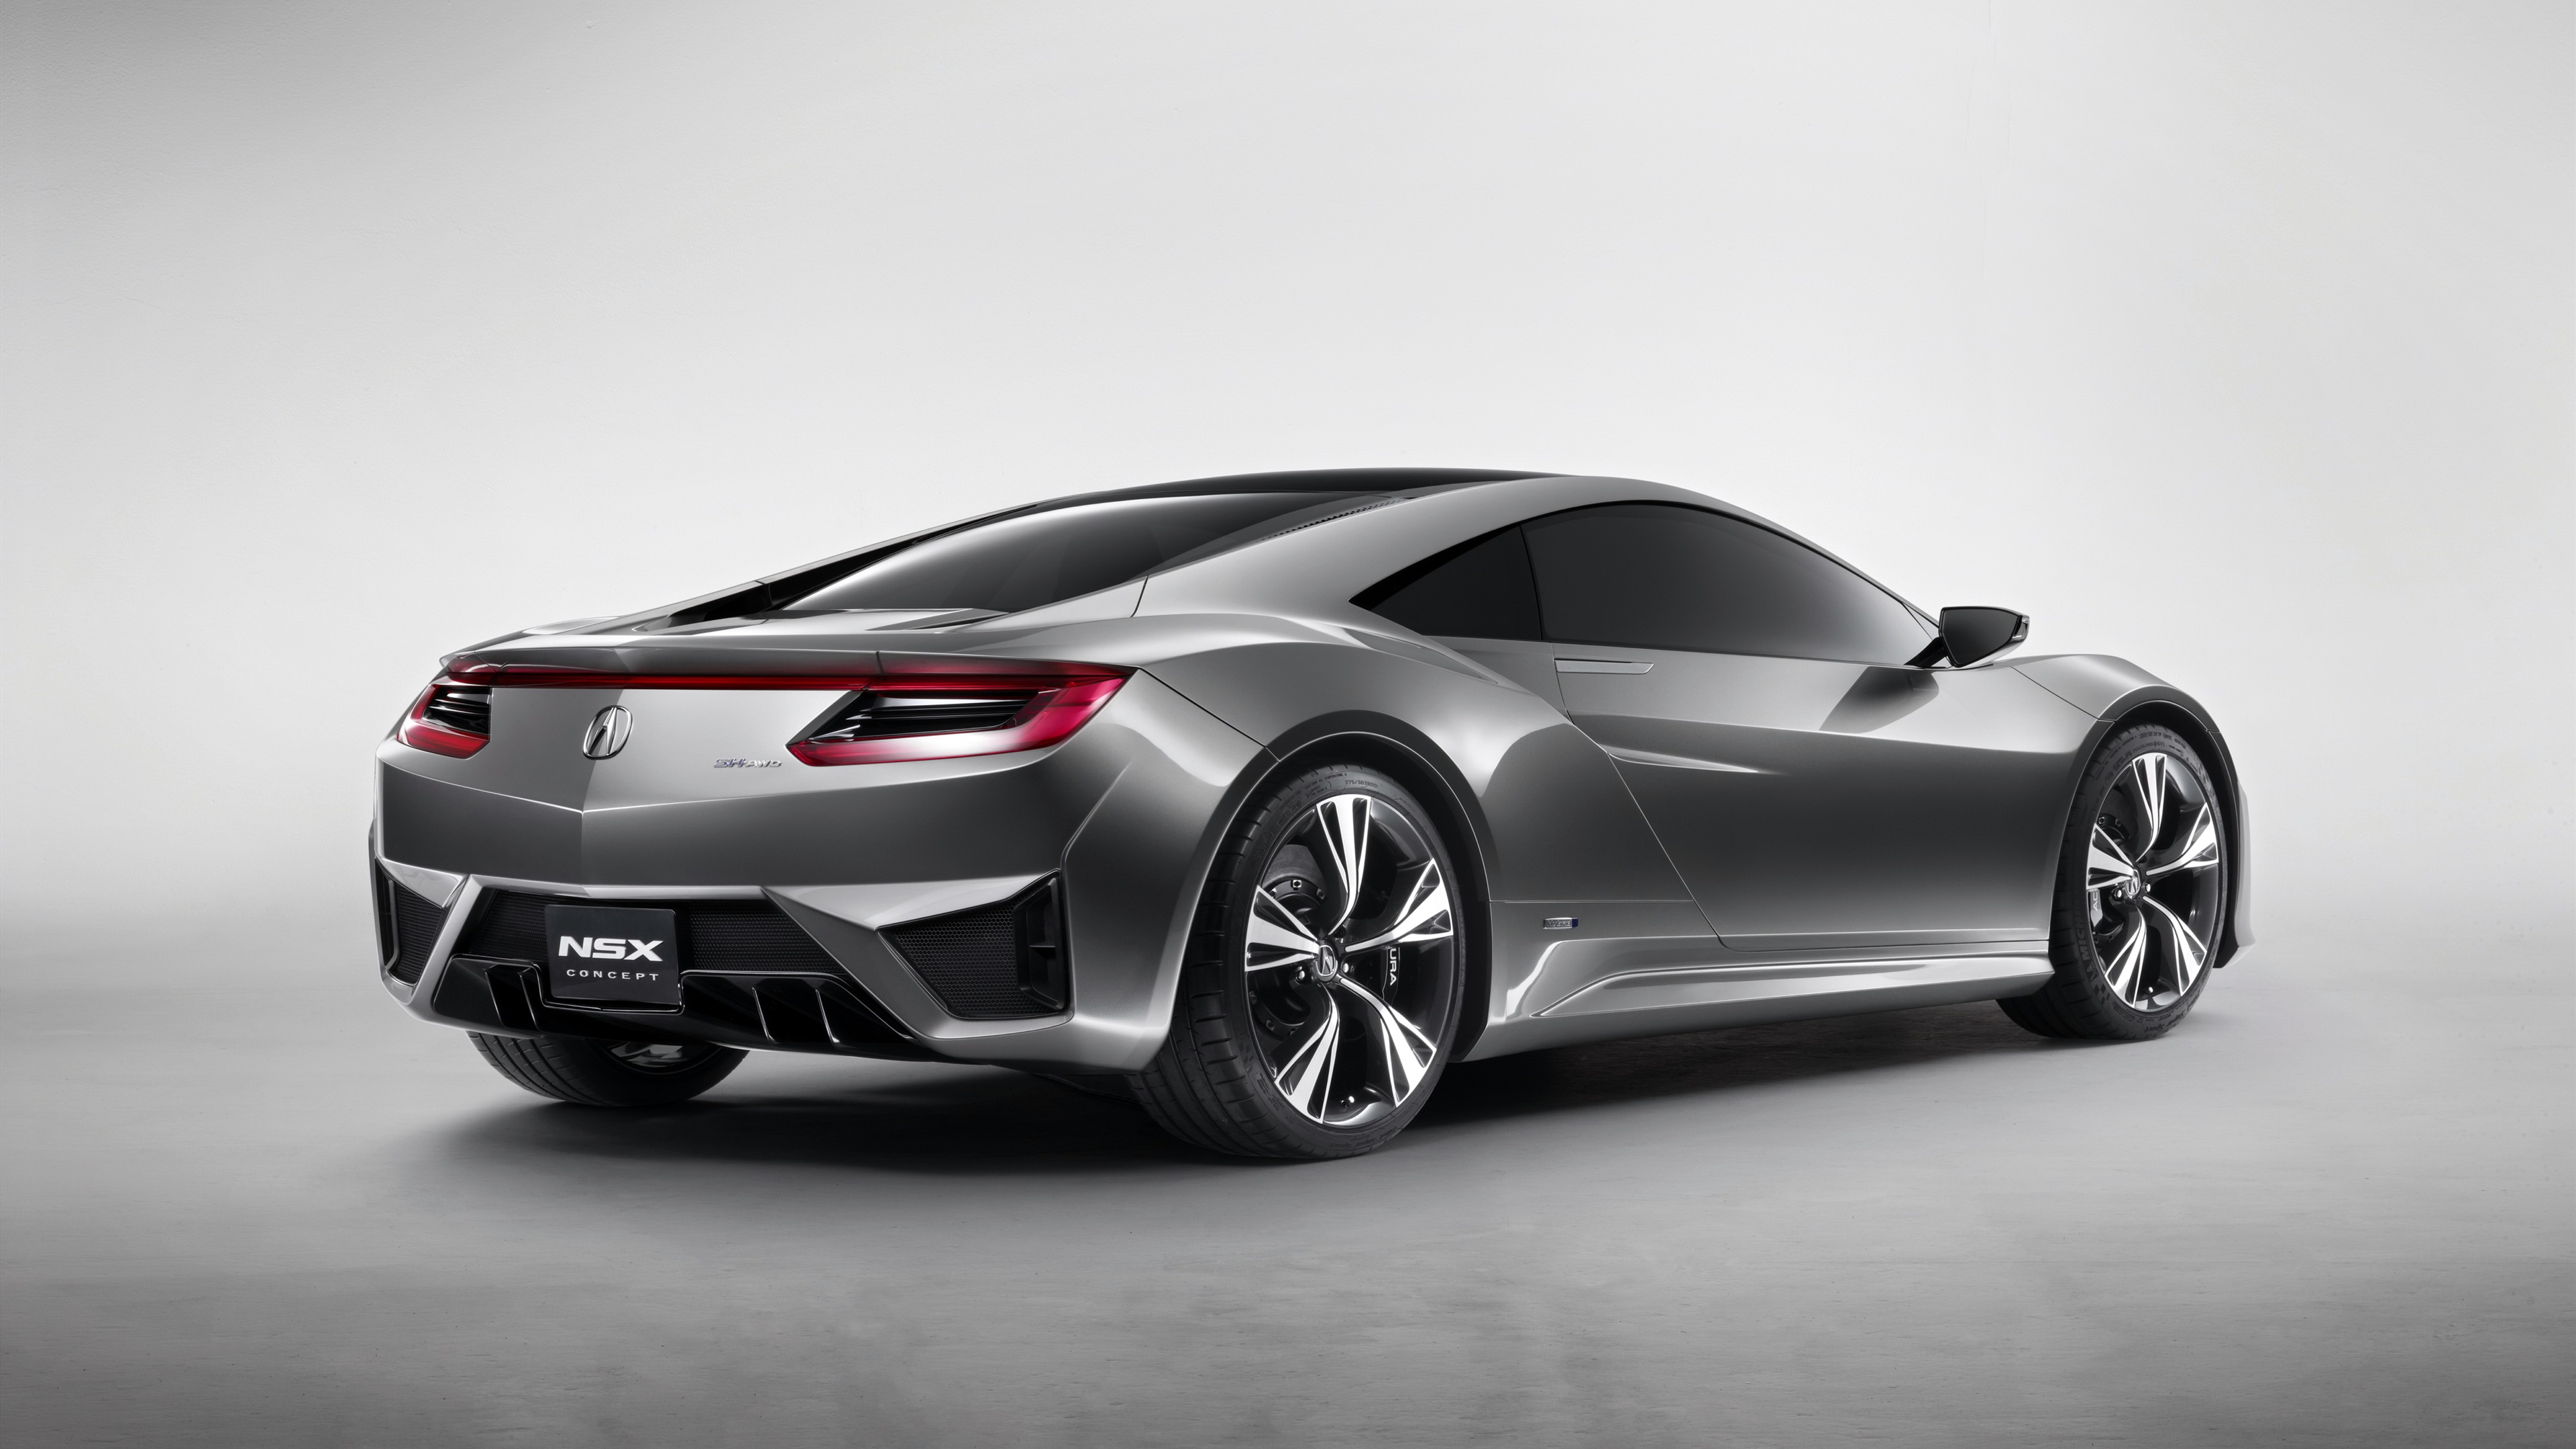 Wallpaper Acura NSX concept car back view 3840x2160 UHD 4K